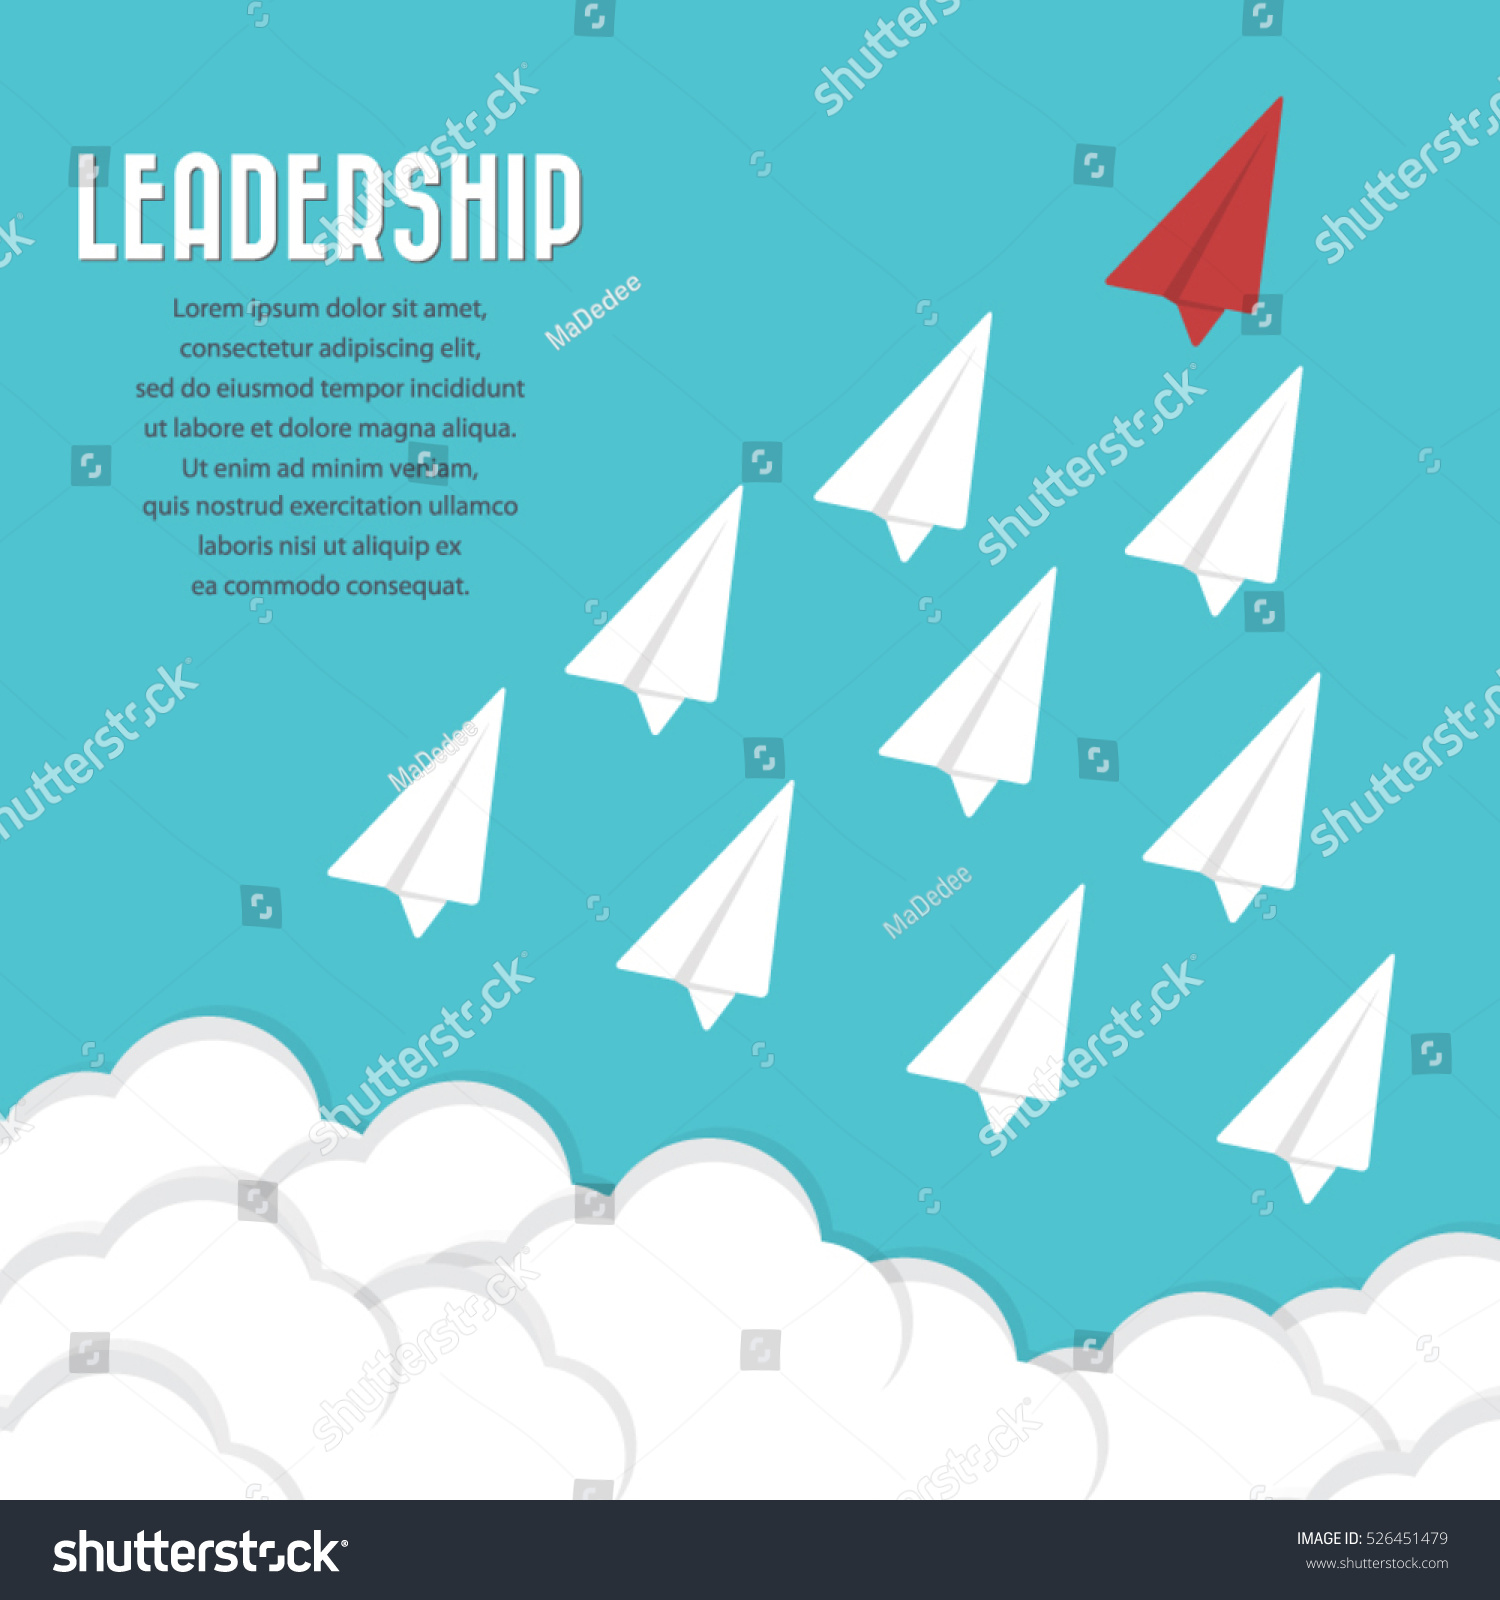 red paper airplane leader among others stock vector  red paper airplane as a leader among others leadership teamwork motivation stand